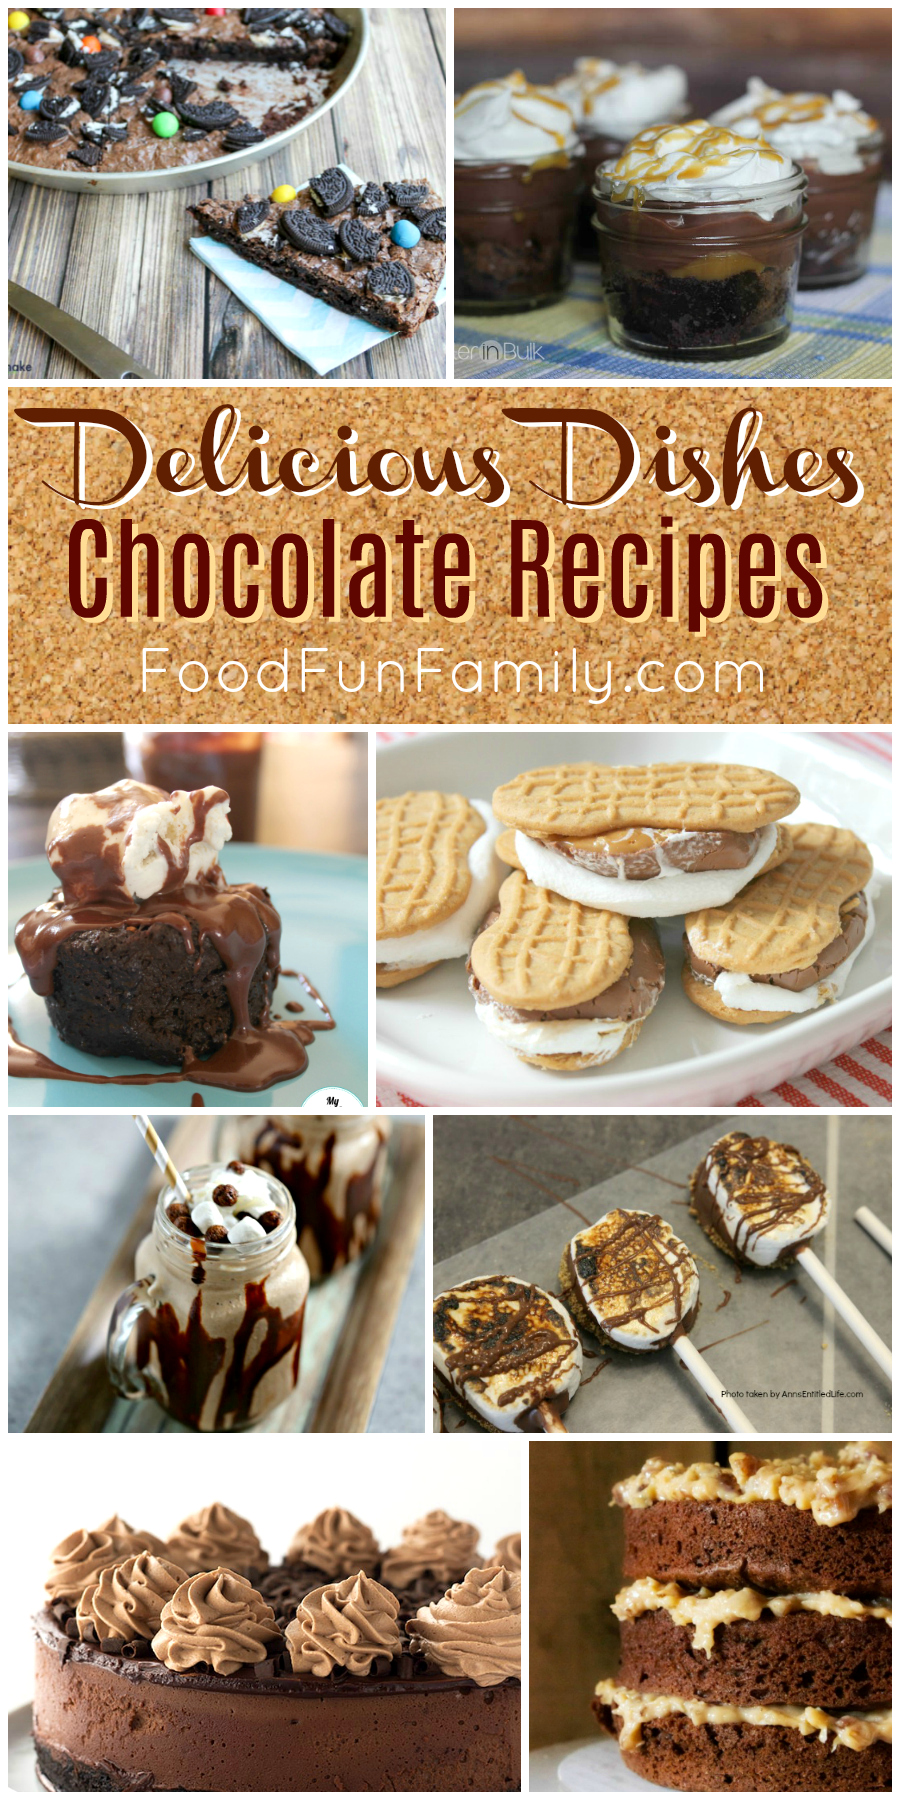 Crave-worthy chocolate recipes - a Delicious Dishes Recipe party collection of tasty chocolate treats